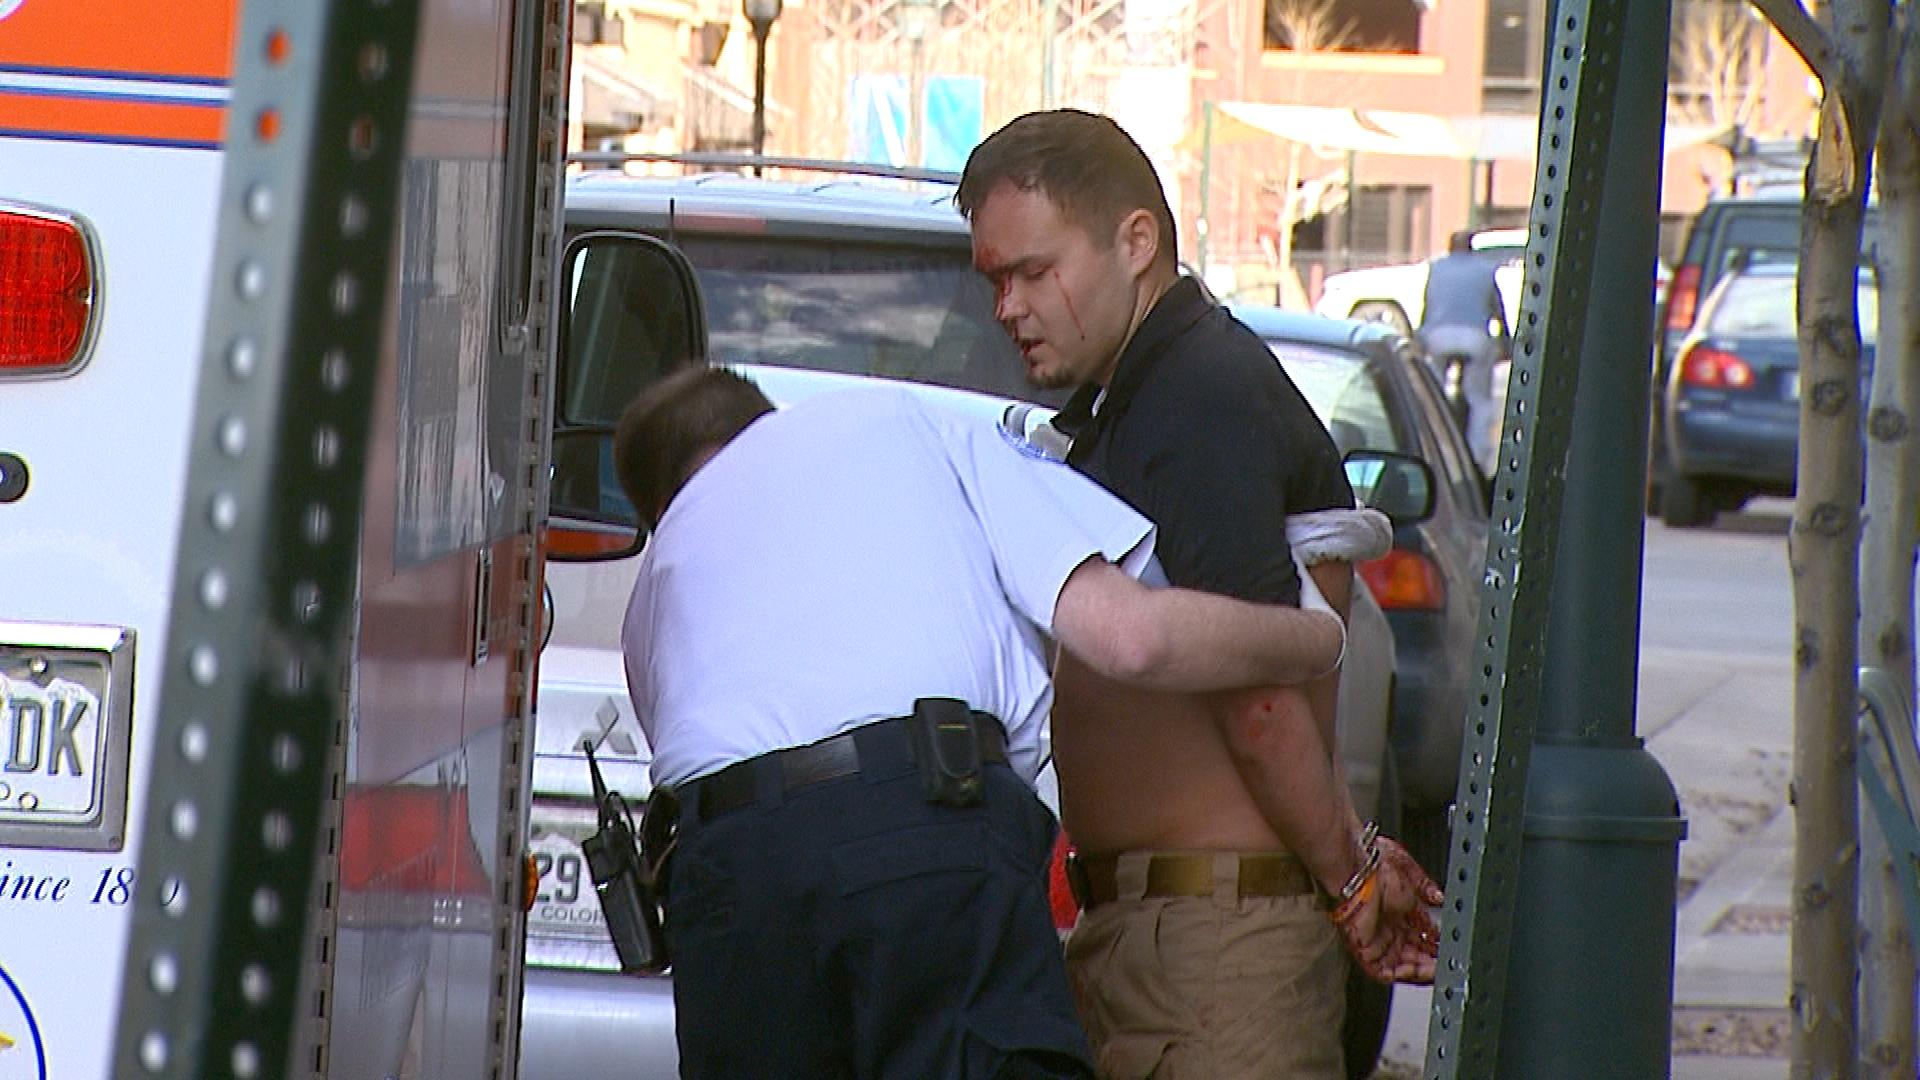 The suspect being arrested (credit: CBS)